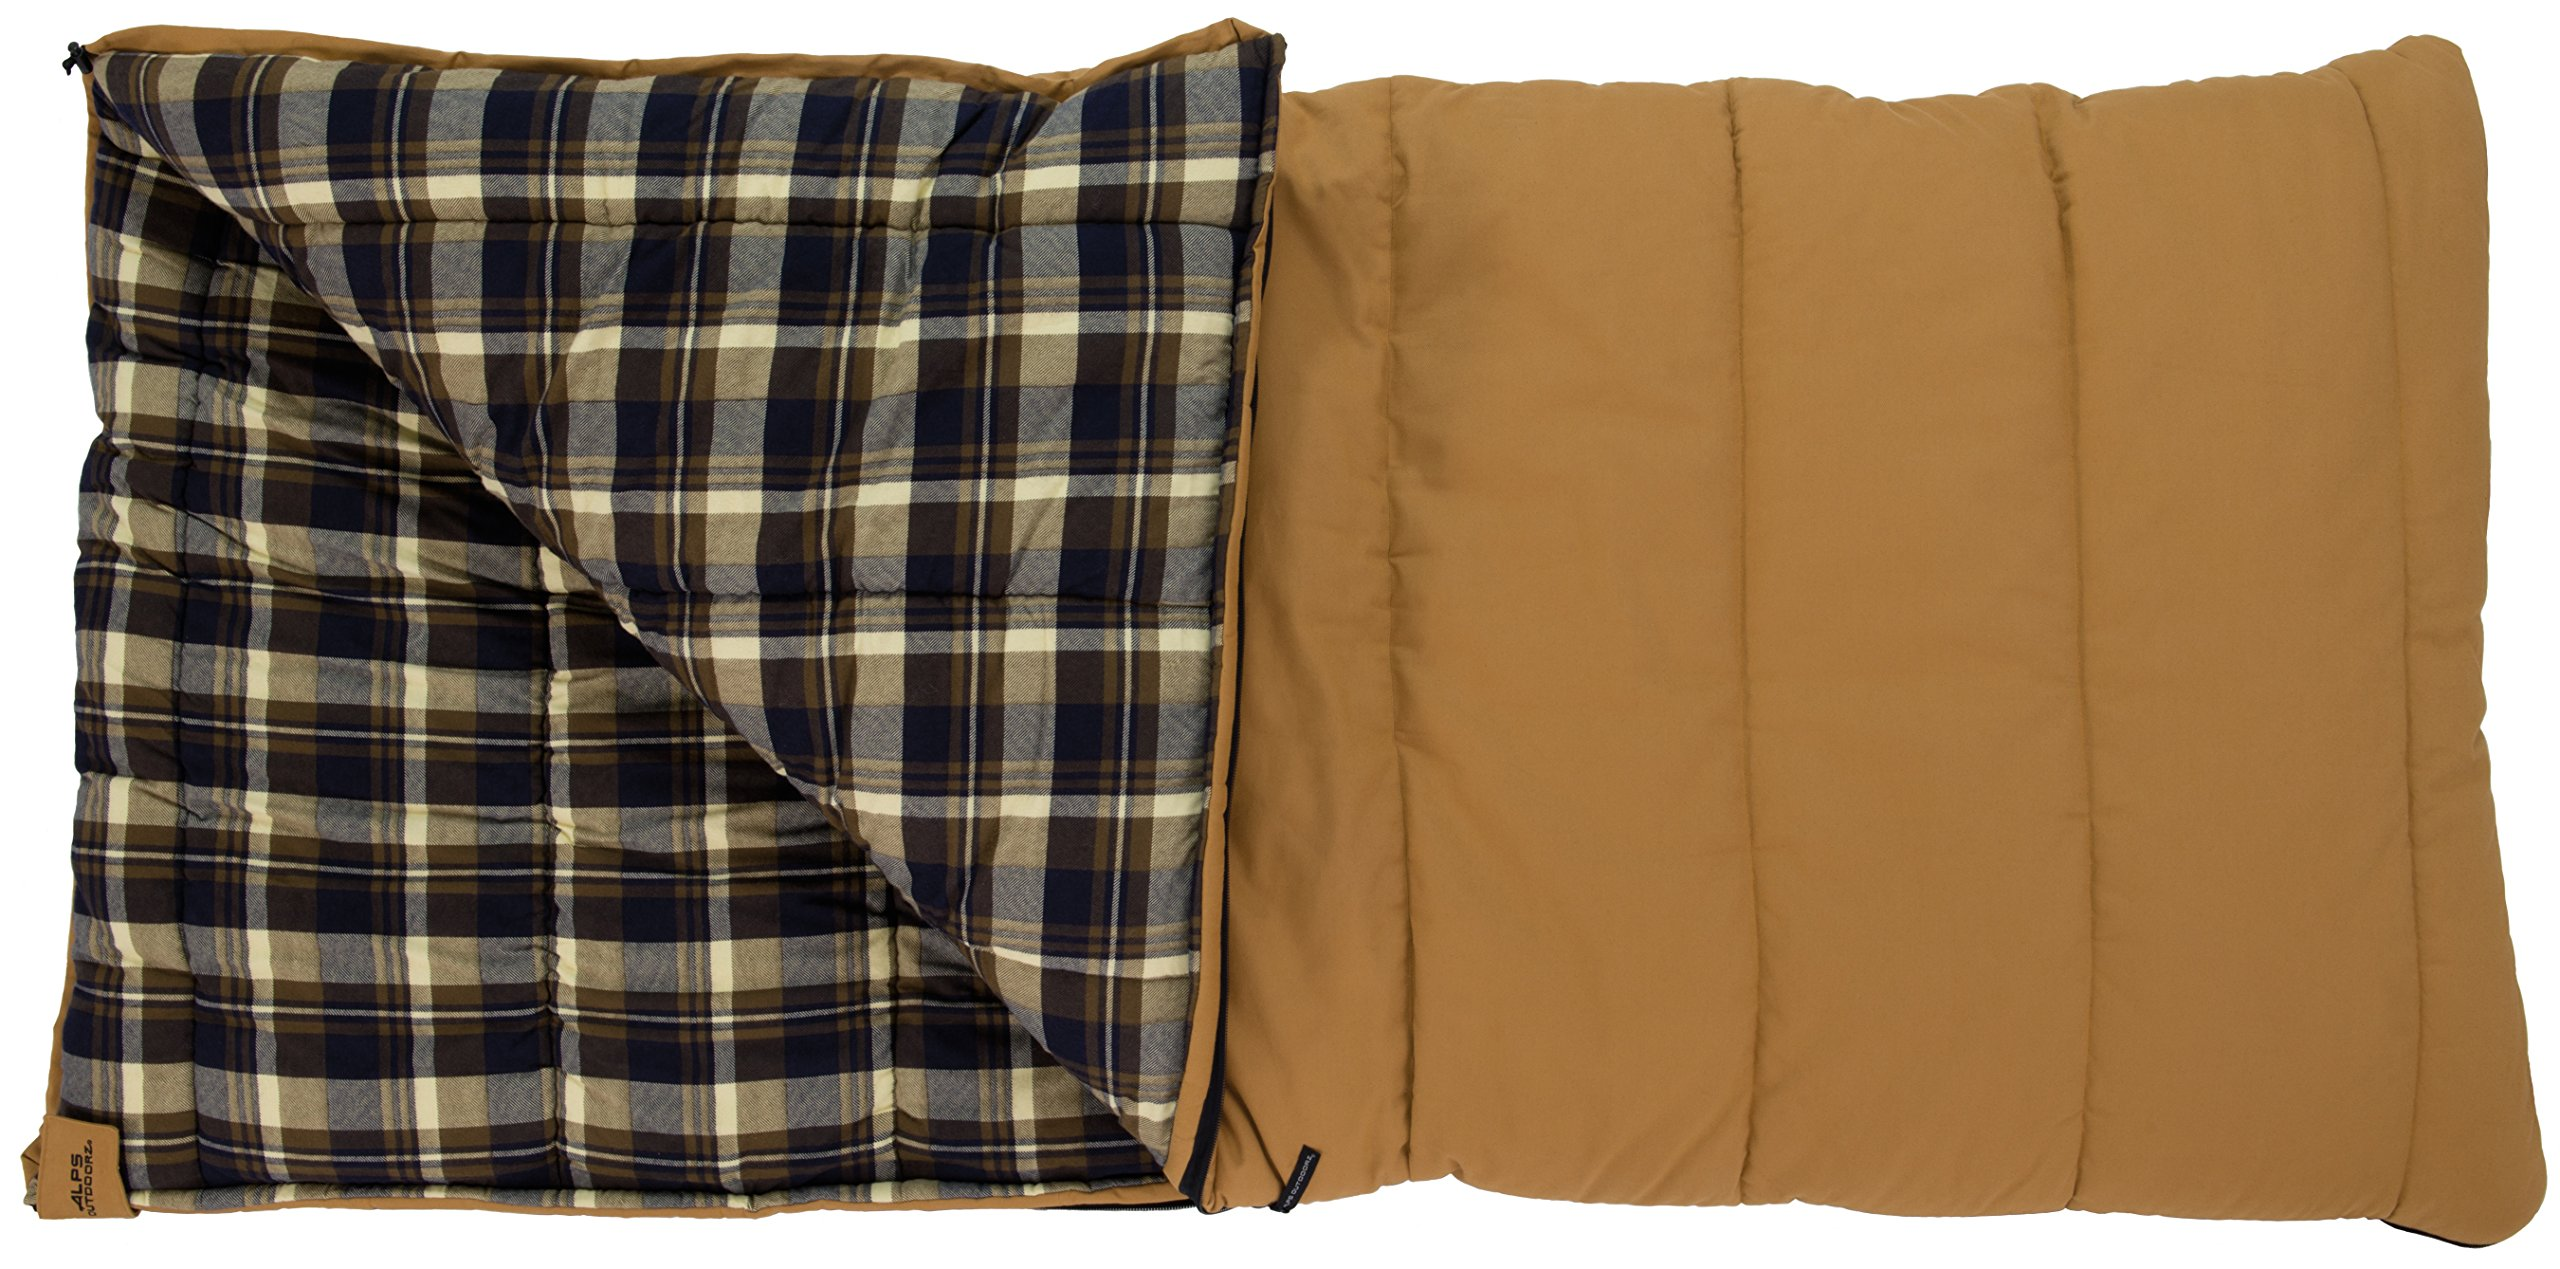 ALPS OutdoorZ Redwood -25 Sleeping Bag by ALPS OutdoorZ (Image #5)